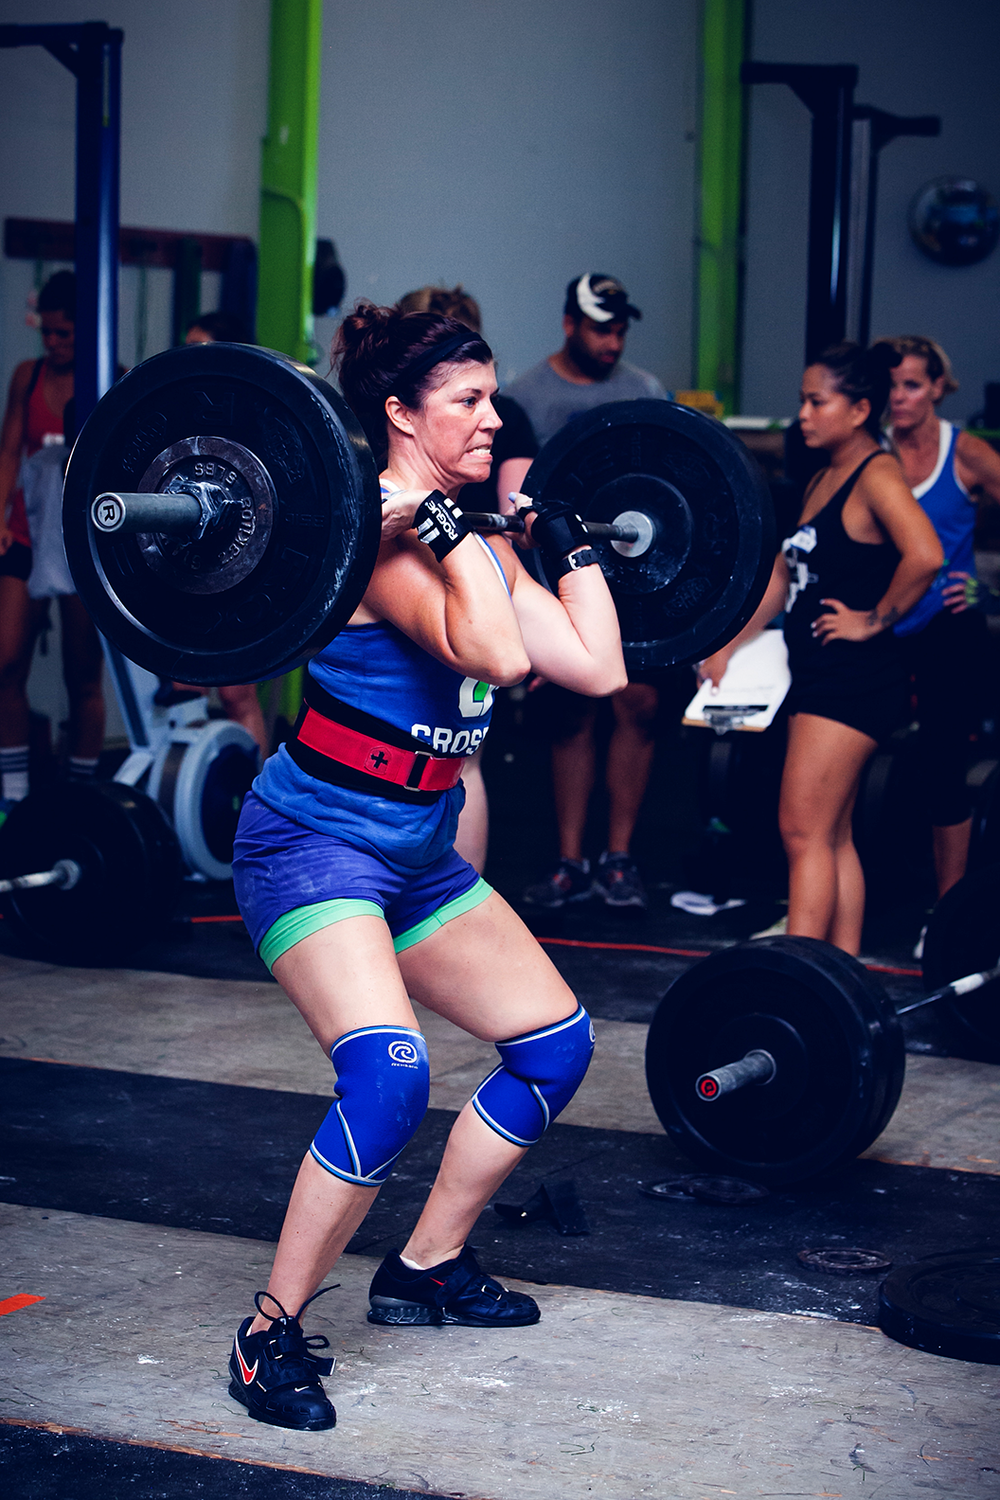 crossfit-hoffman-estates-2016-144_RT.png